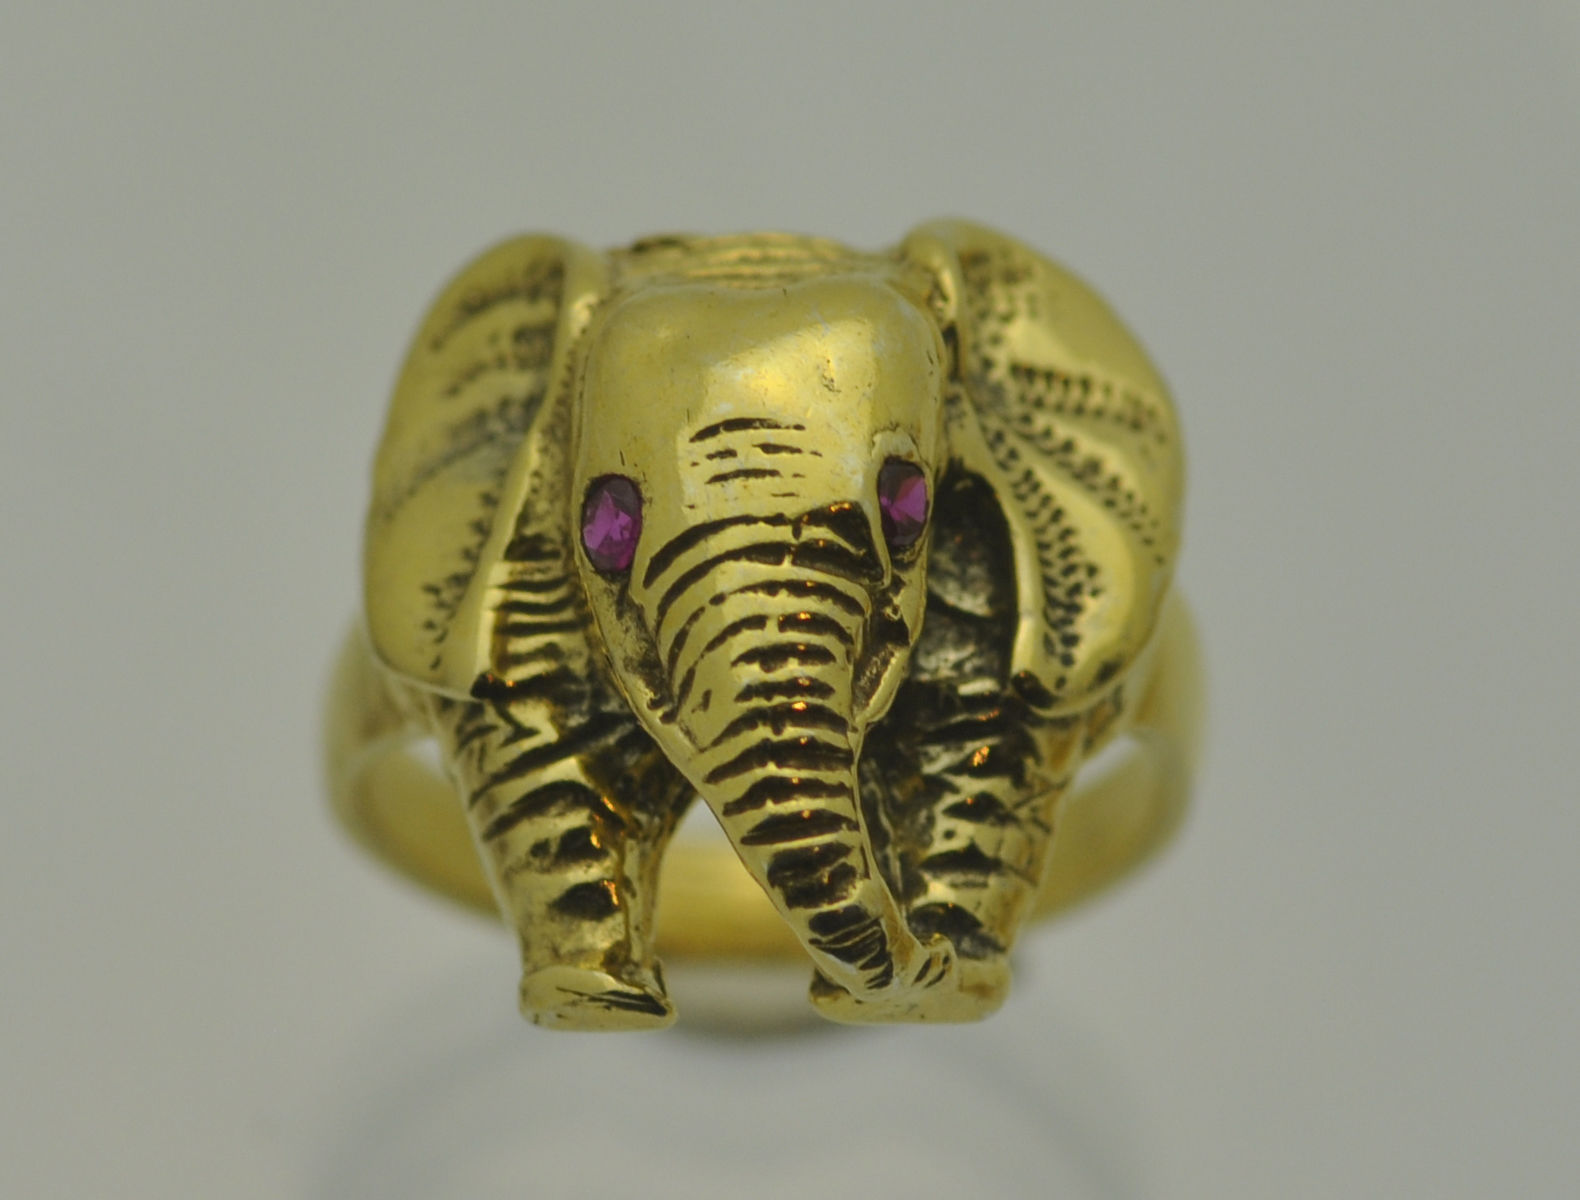 NICE 24K GOLD PLATED REAL Sterling Silver Detailed Elephant Ring Jewelry ruby ey